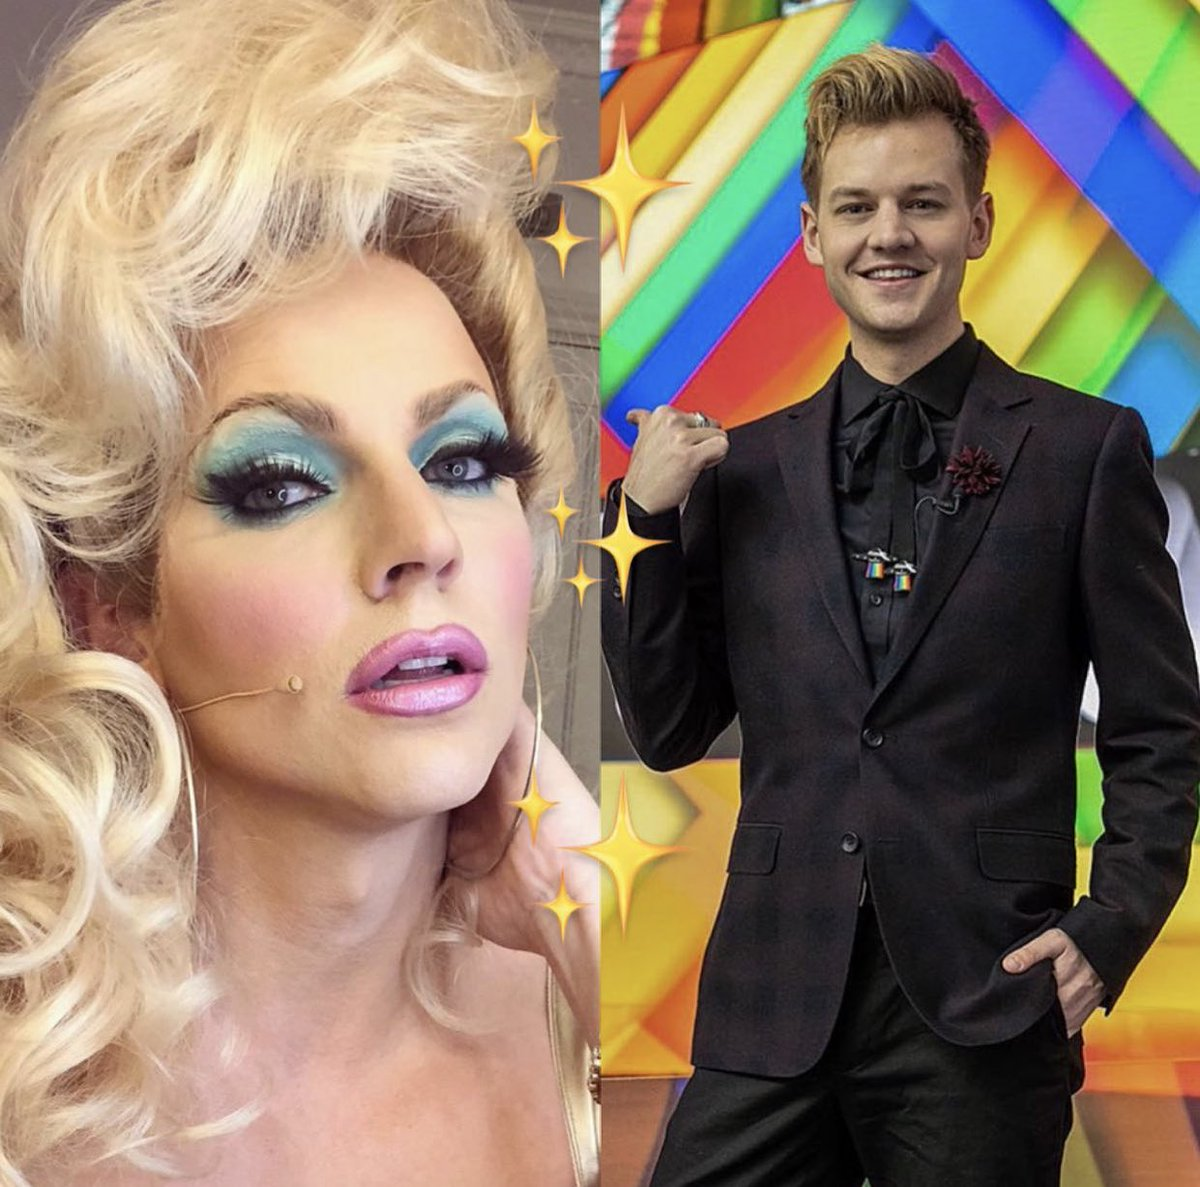 EXCLUSIVE! Courtney Act and Joel Creasy have been unfairly shunned from Rupaul's Drag Race Australia! 😱😭✨ Listen here to find out why:   #rupaul #rupaulsdragrace #dragrace #dragqueen